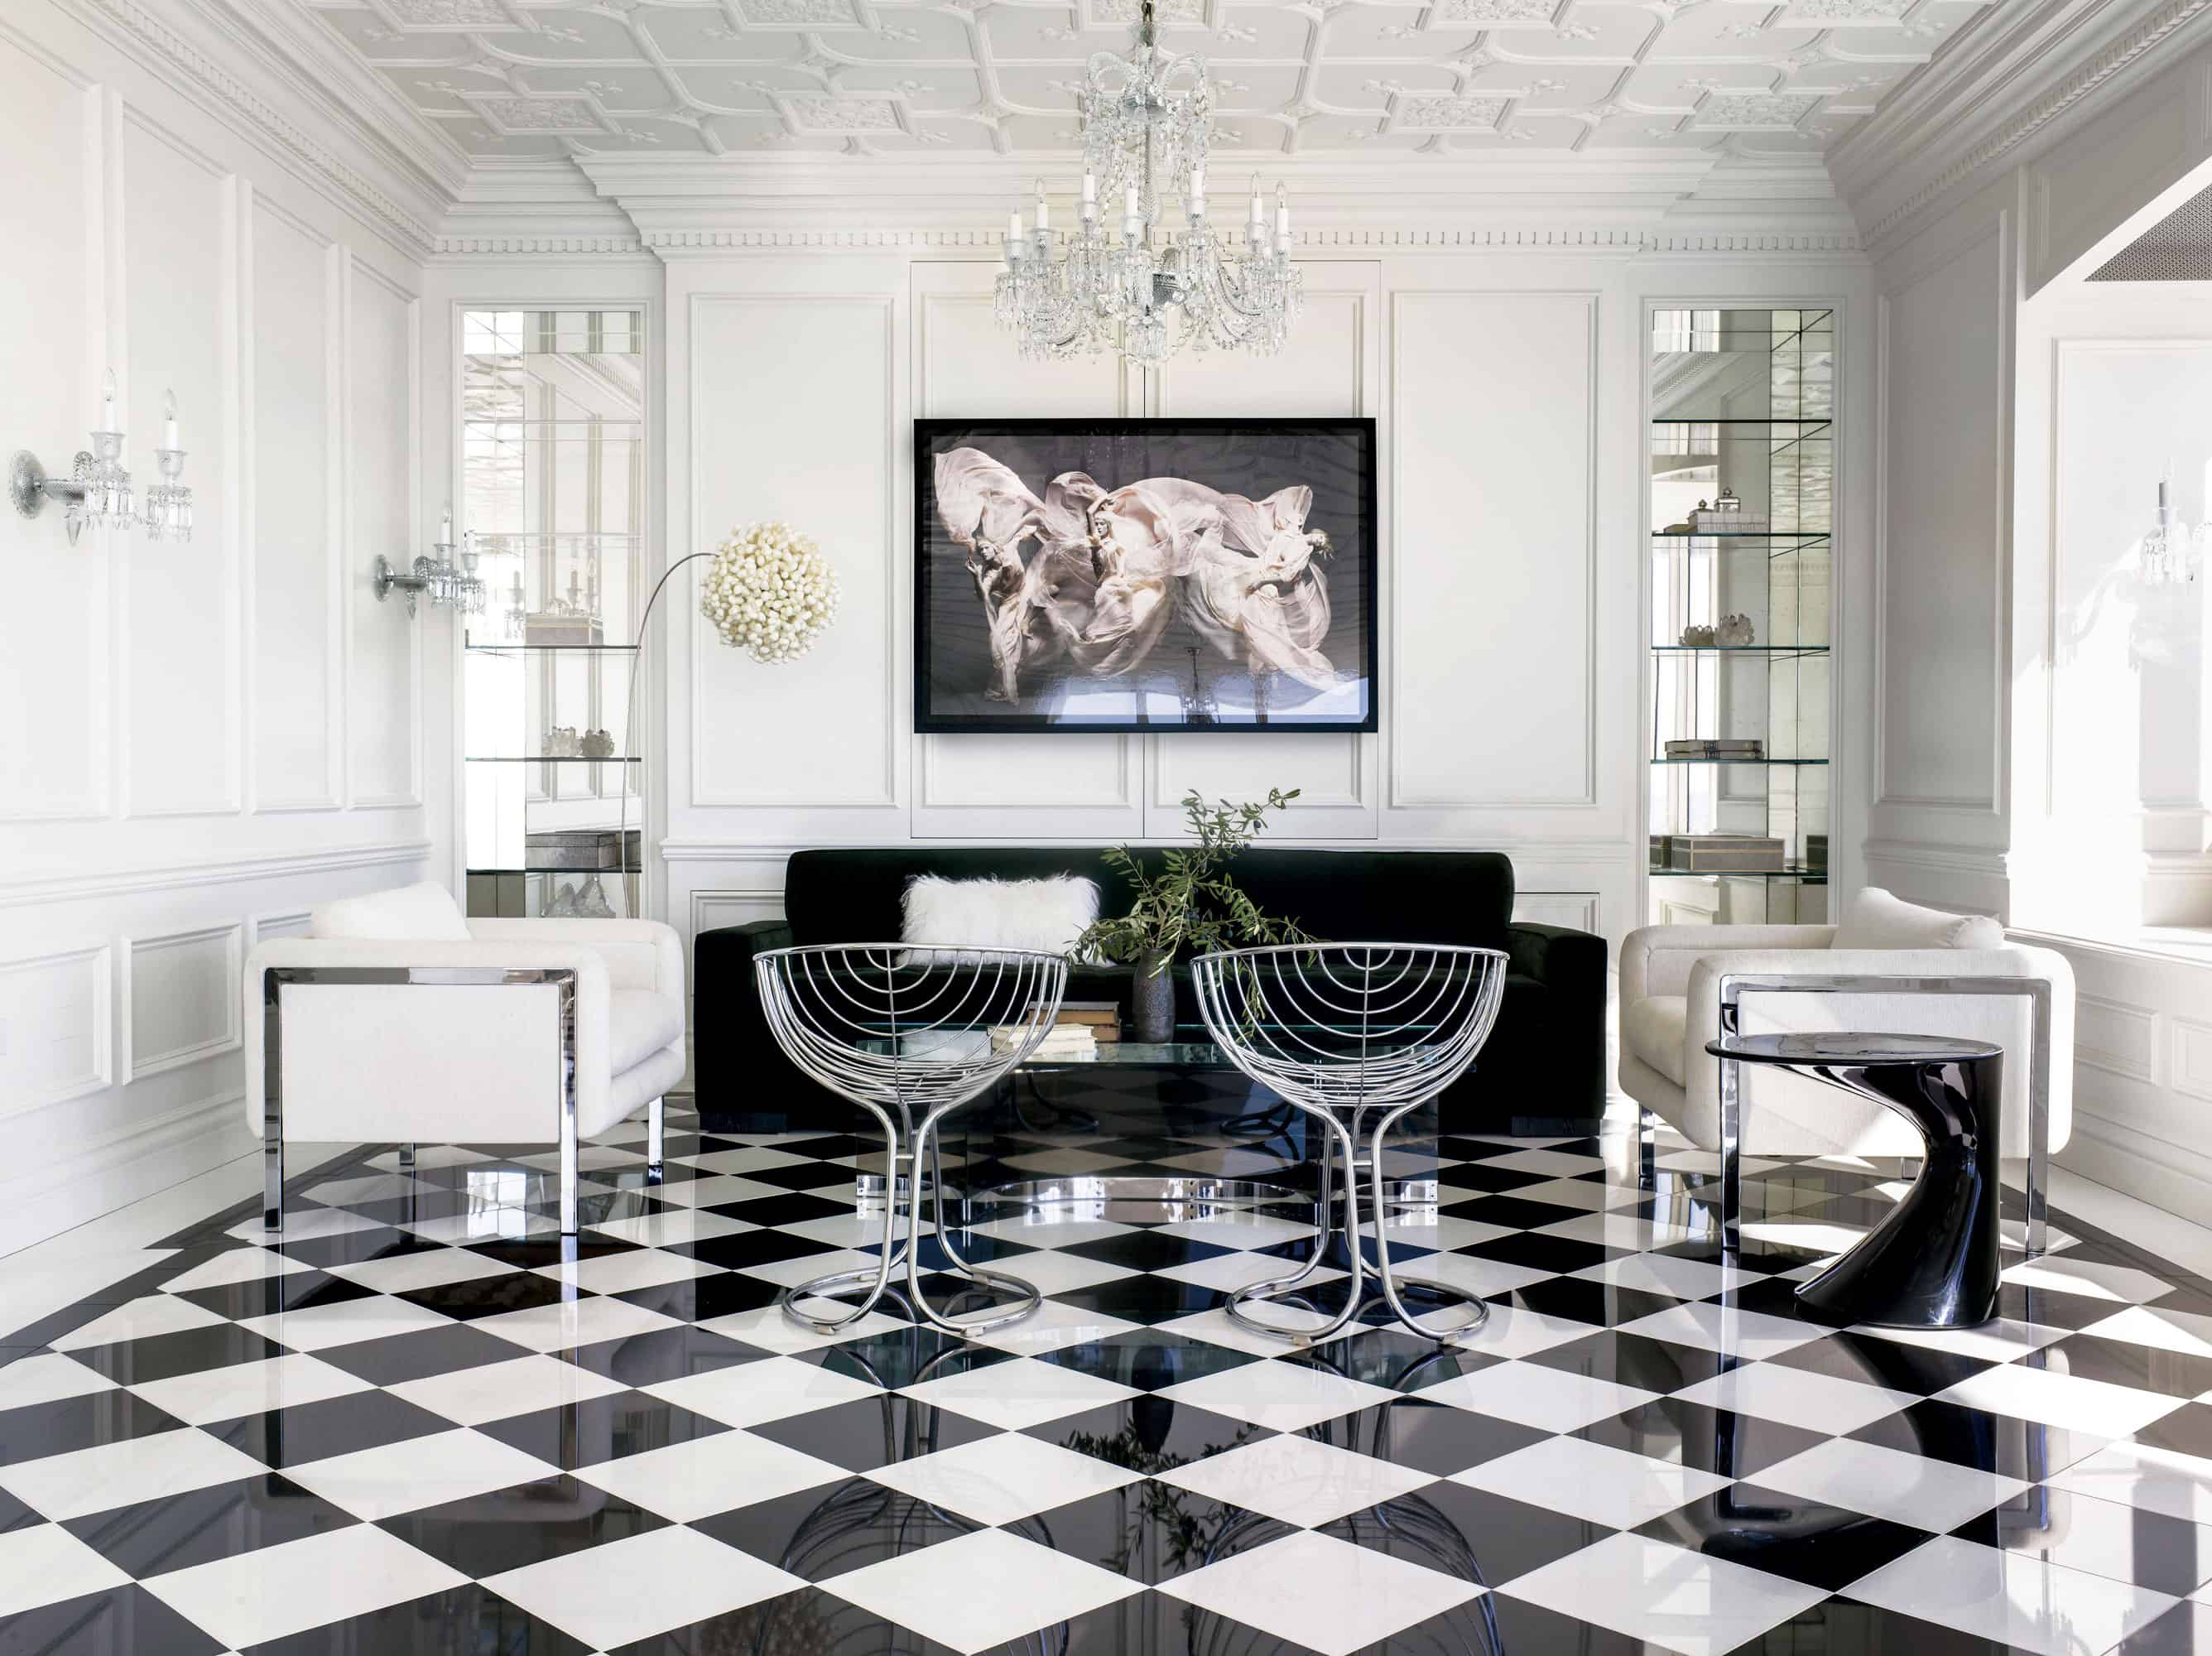 black and white floor tile kitchen. View in gallery  Simple Remodel Chess Floors Can Change the Game